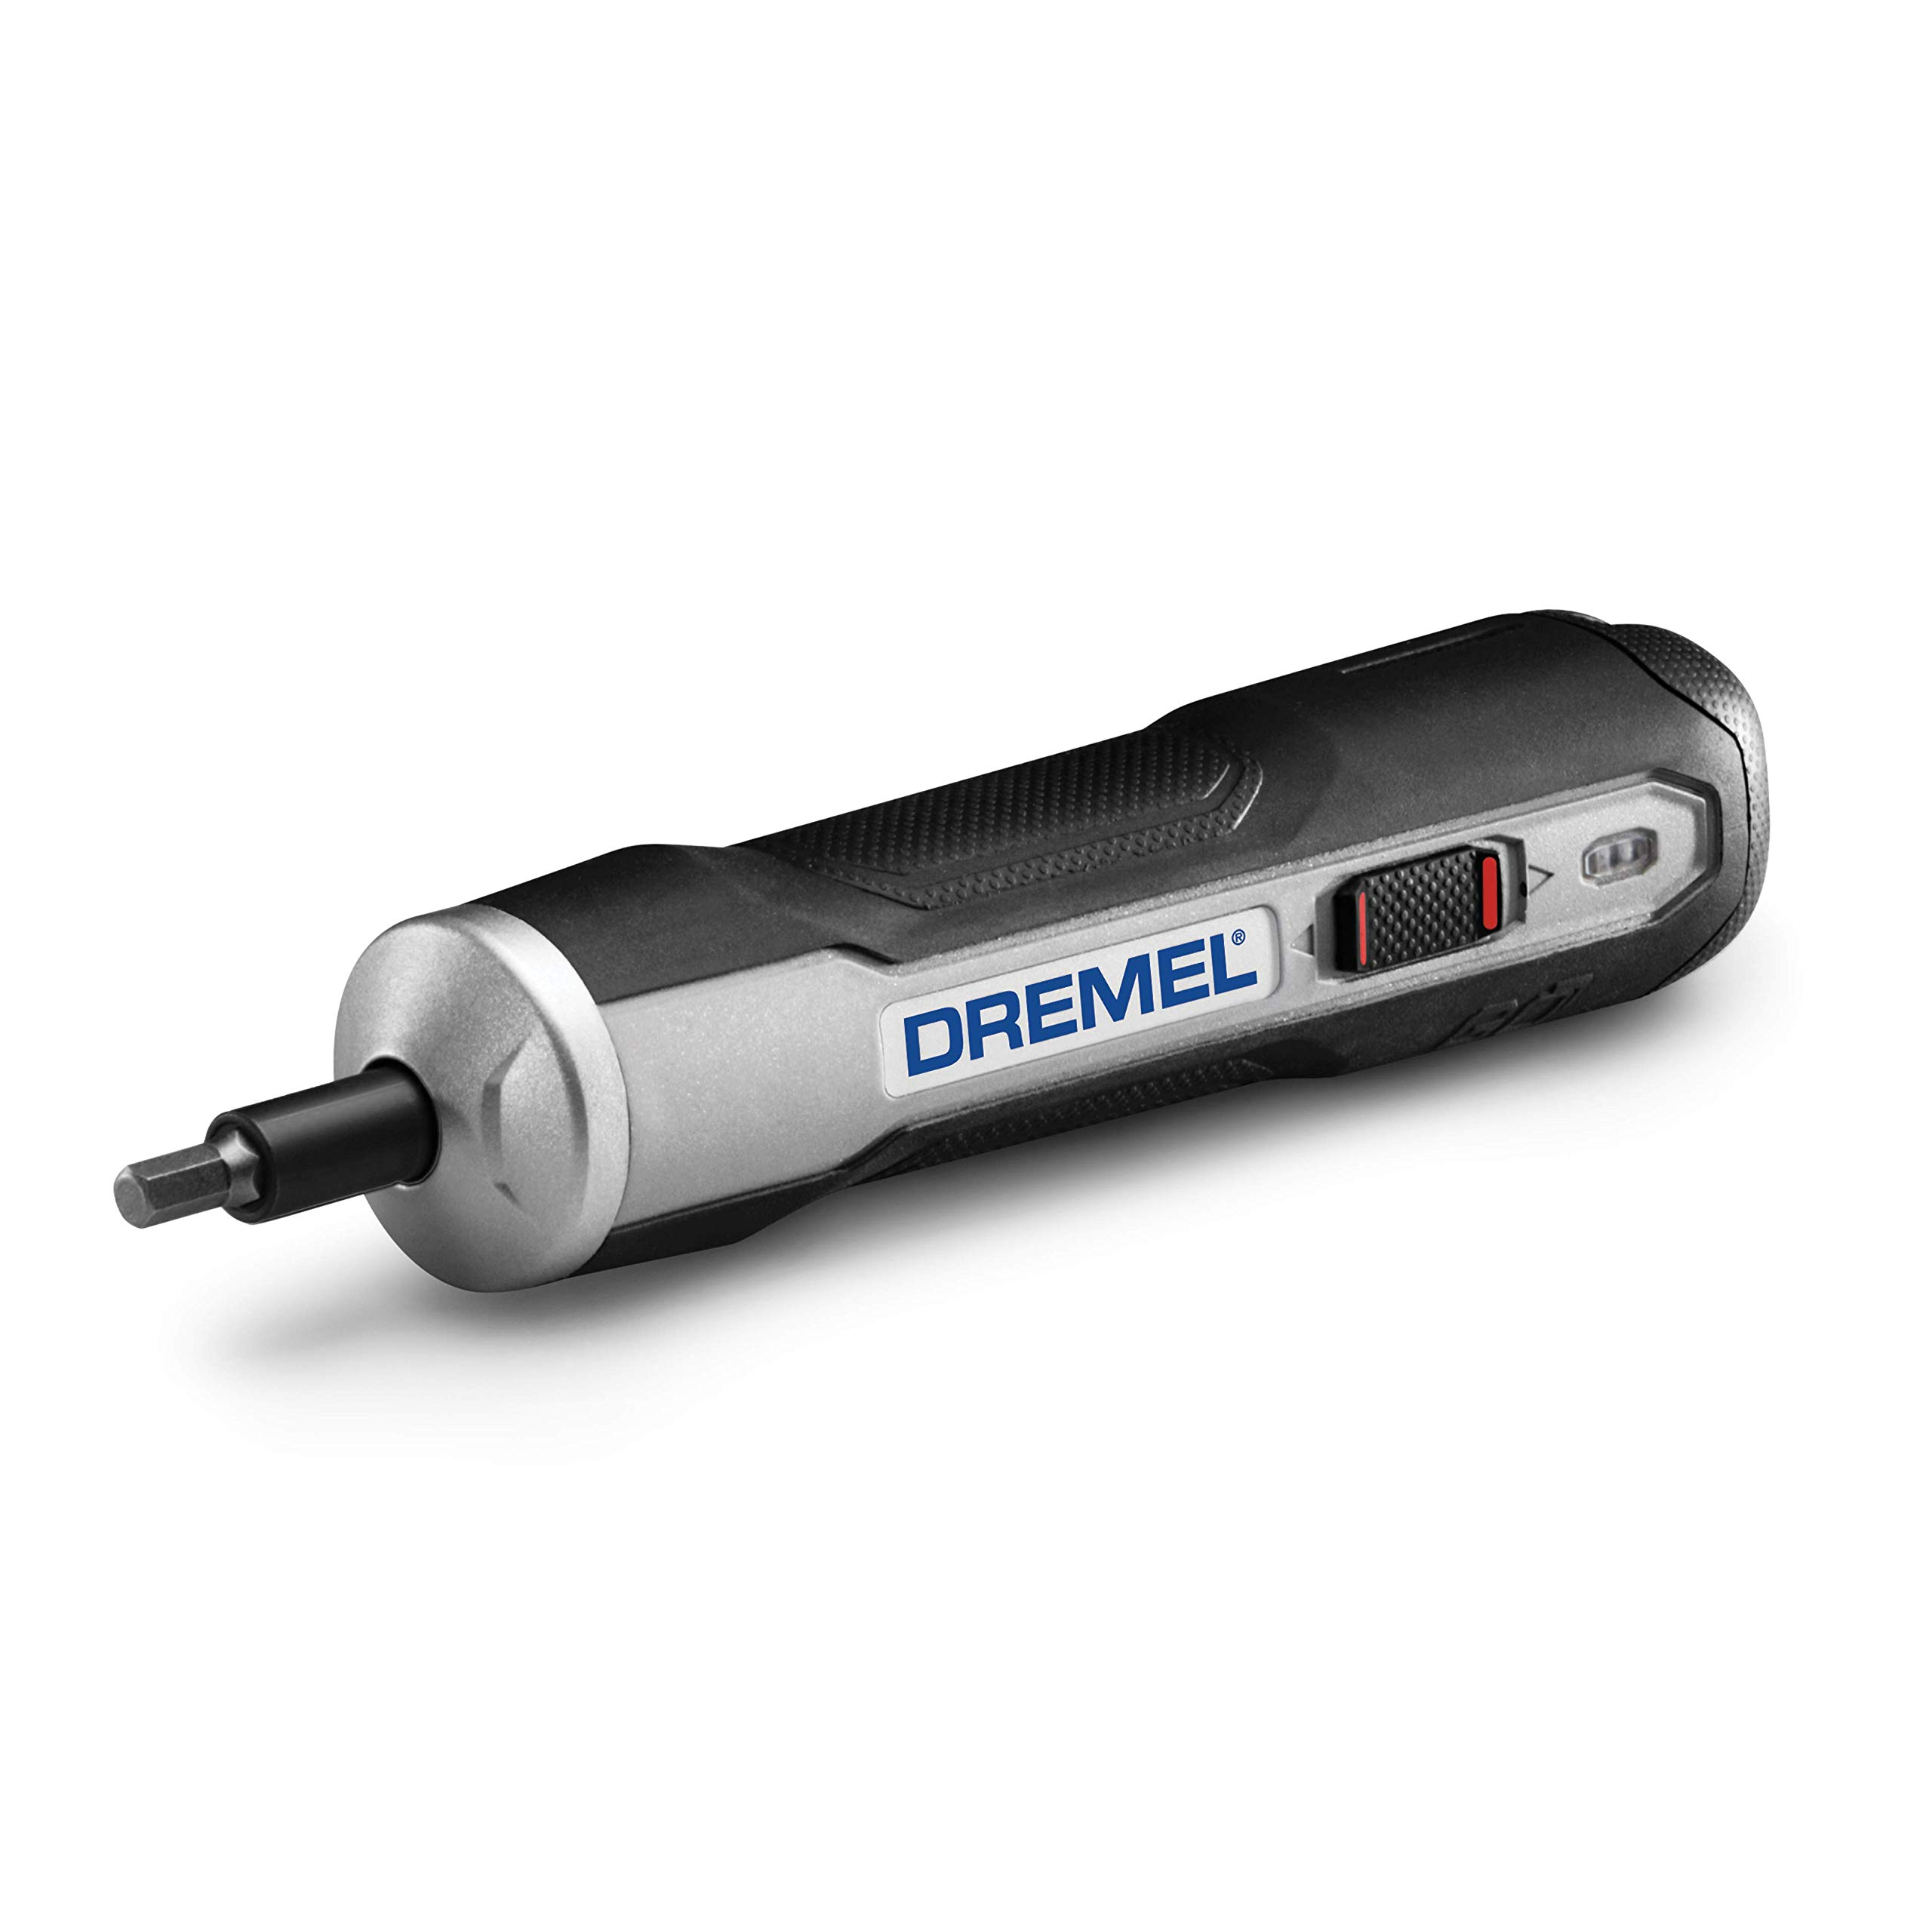 Dremel GO-01 4V Max Cordless Screwdriver with USB Charger